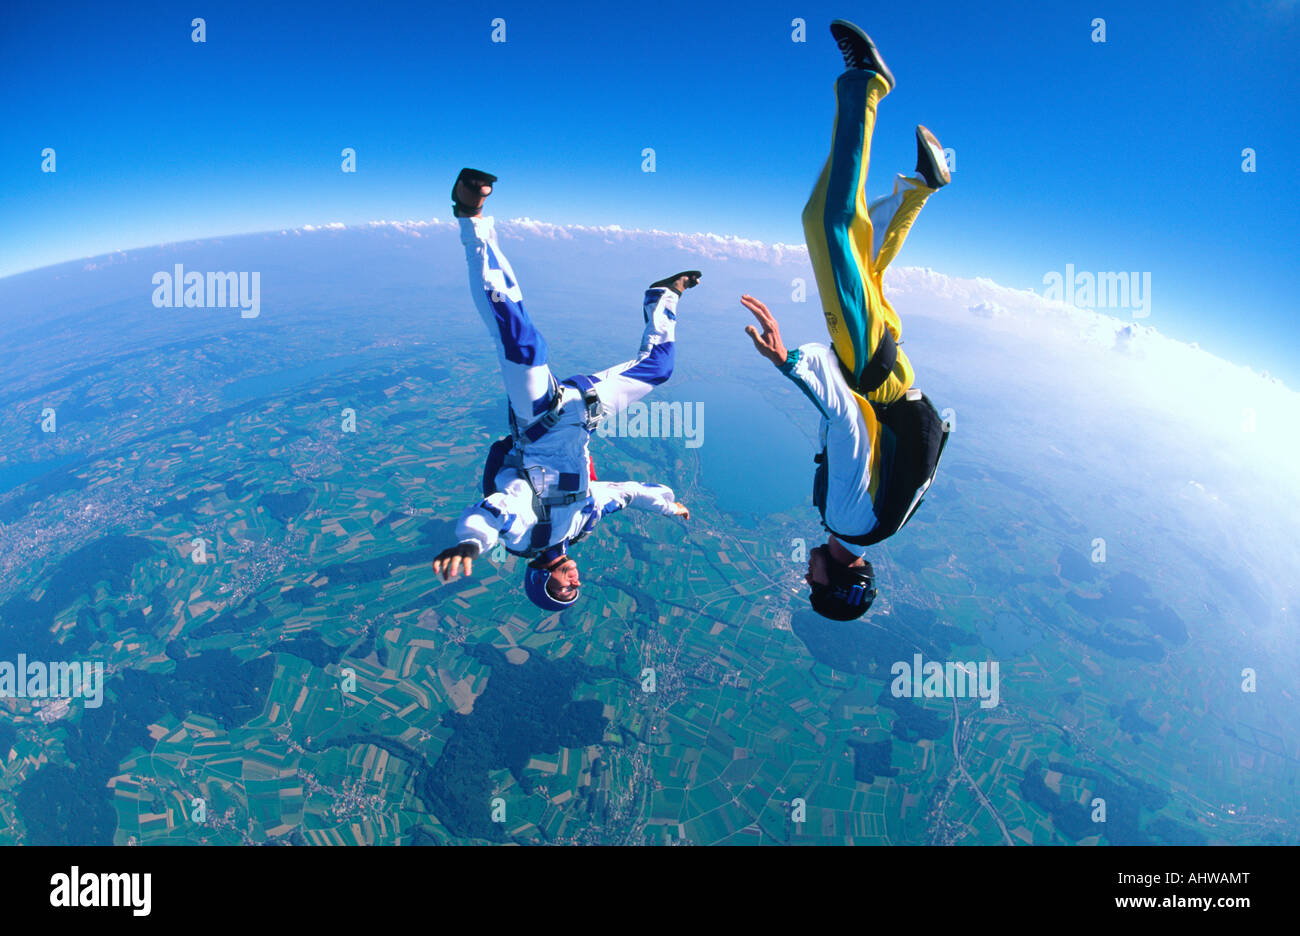 Two Skydivers enjoying falling towards eaurth together in a headdown position - Stock Image